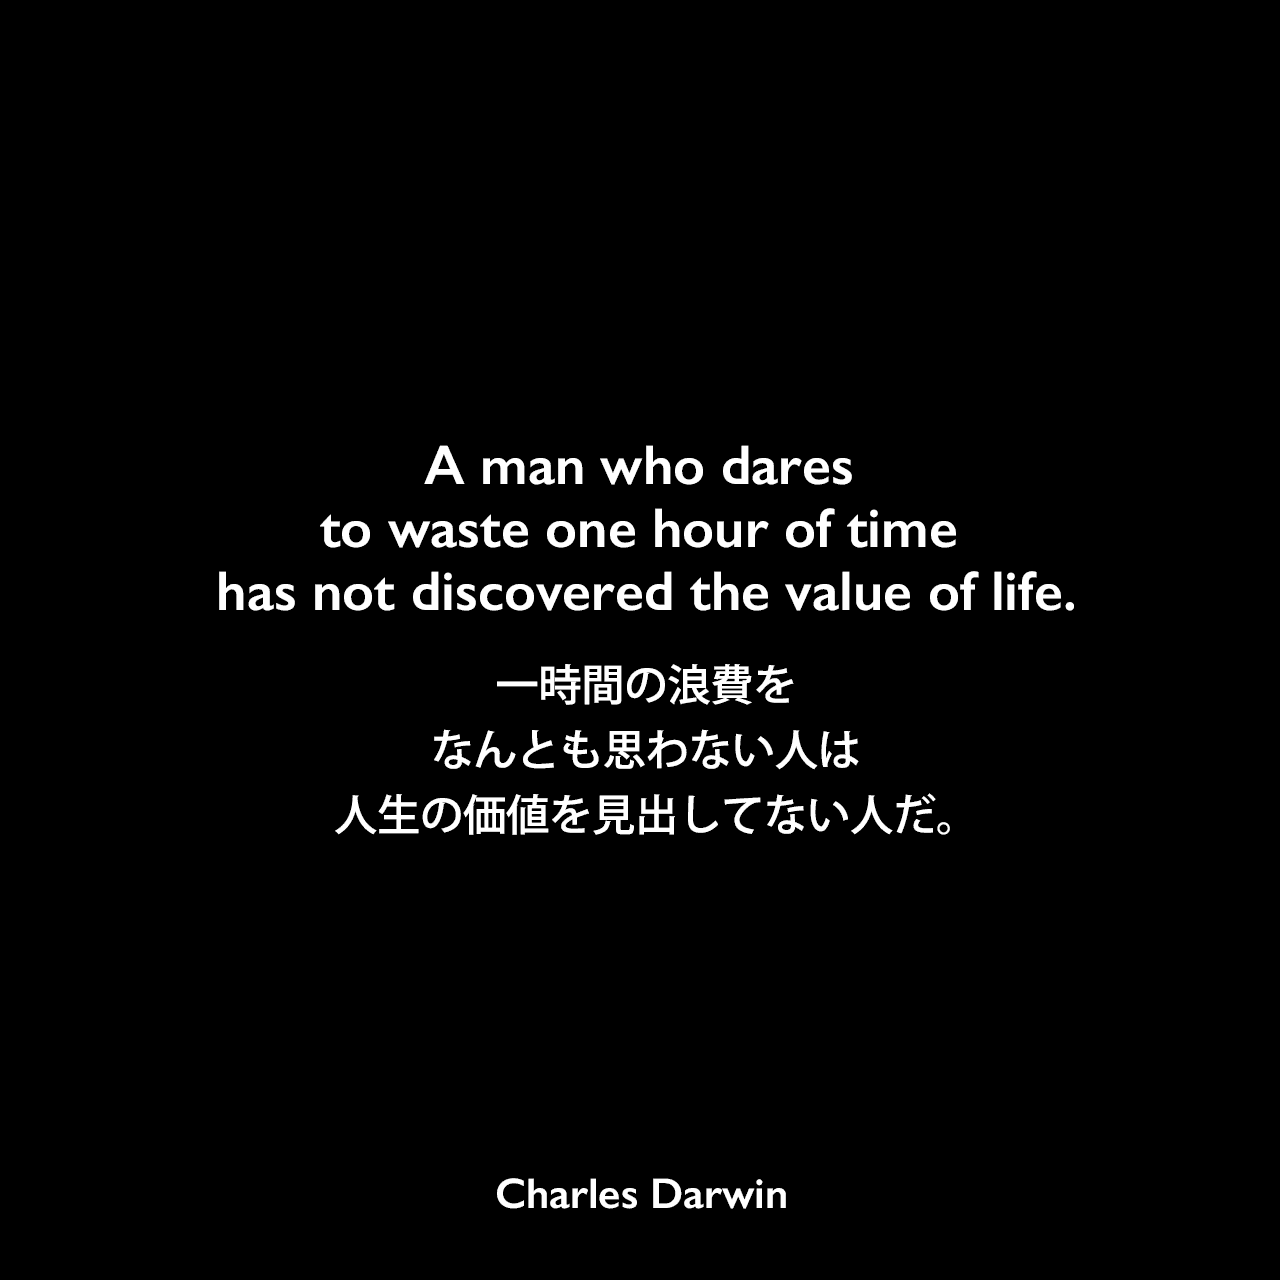 A man who dares to waste one hour of time has not discovered the value of life.一時間の浪費をなんとも思わない人は、人生の価値を見出してない人だ。